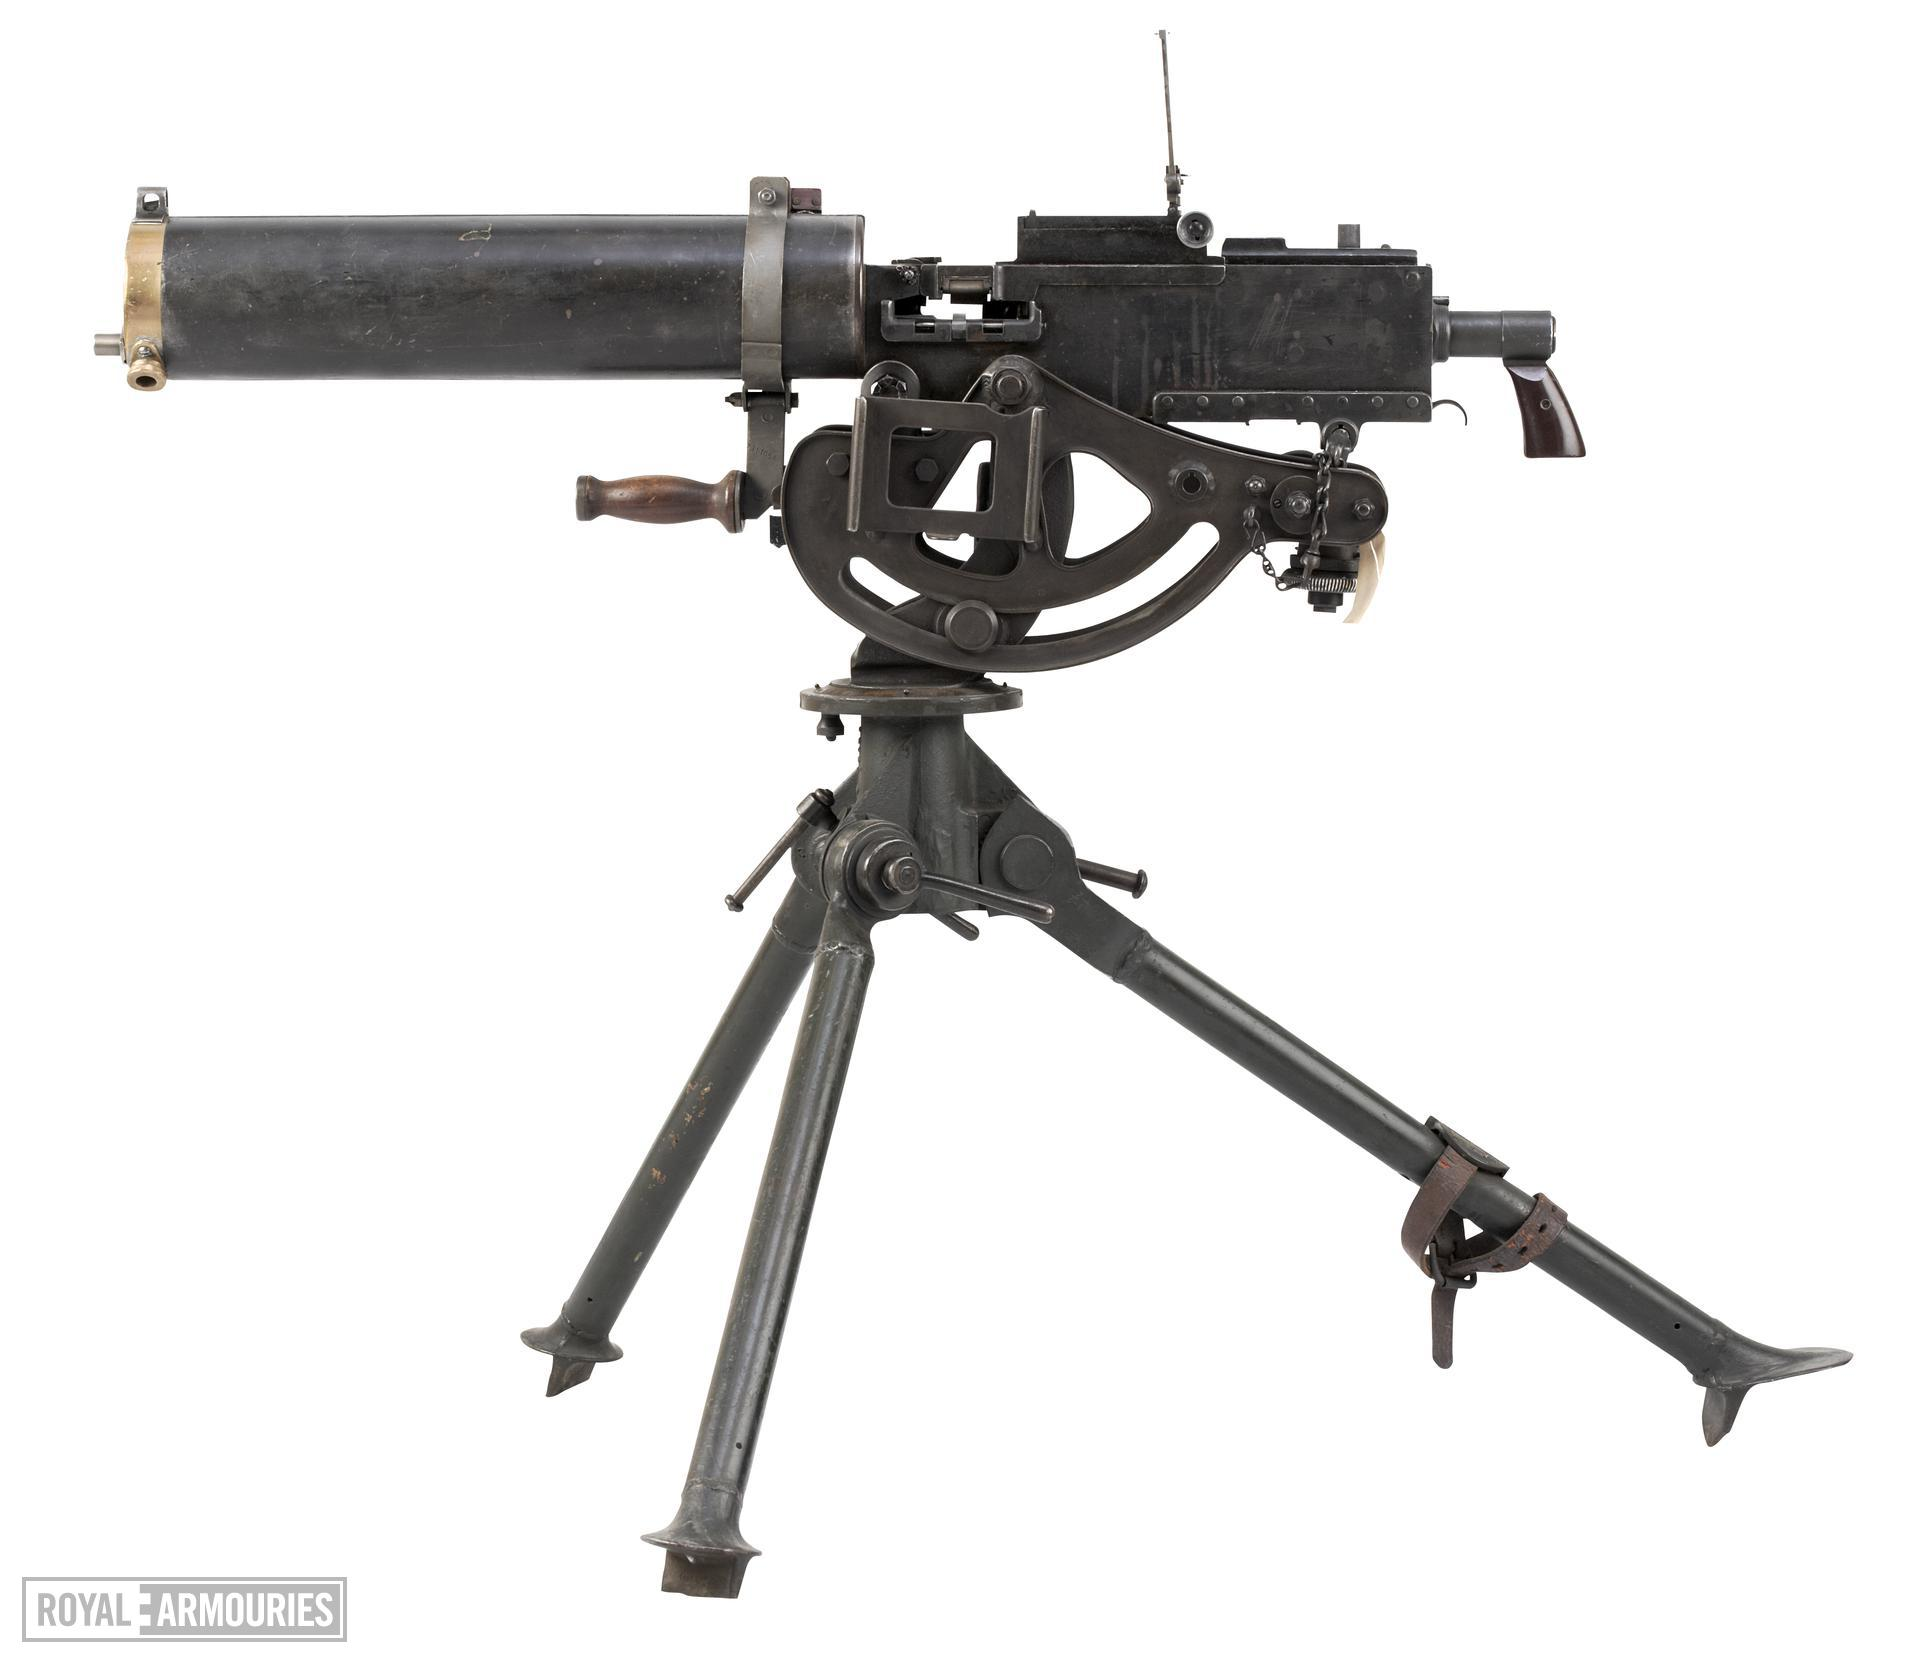 Tripod mount for a M1917A1 Browning machine gun, associated with PR.104. American, probably about 1918